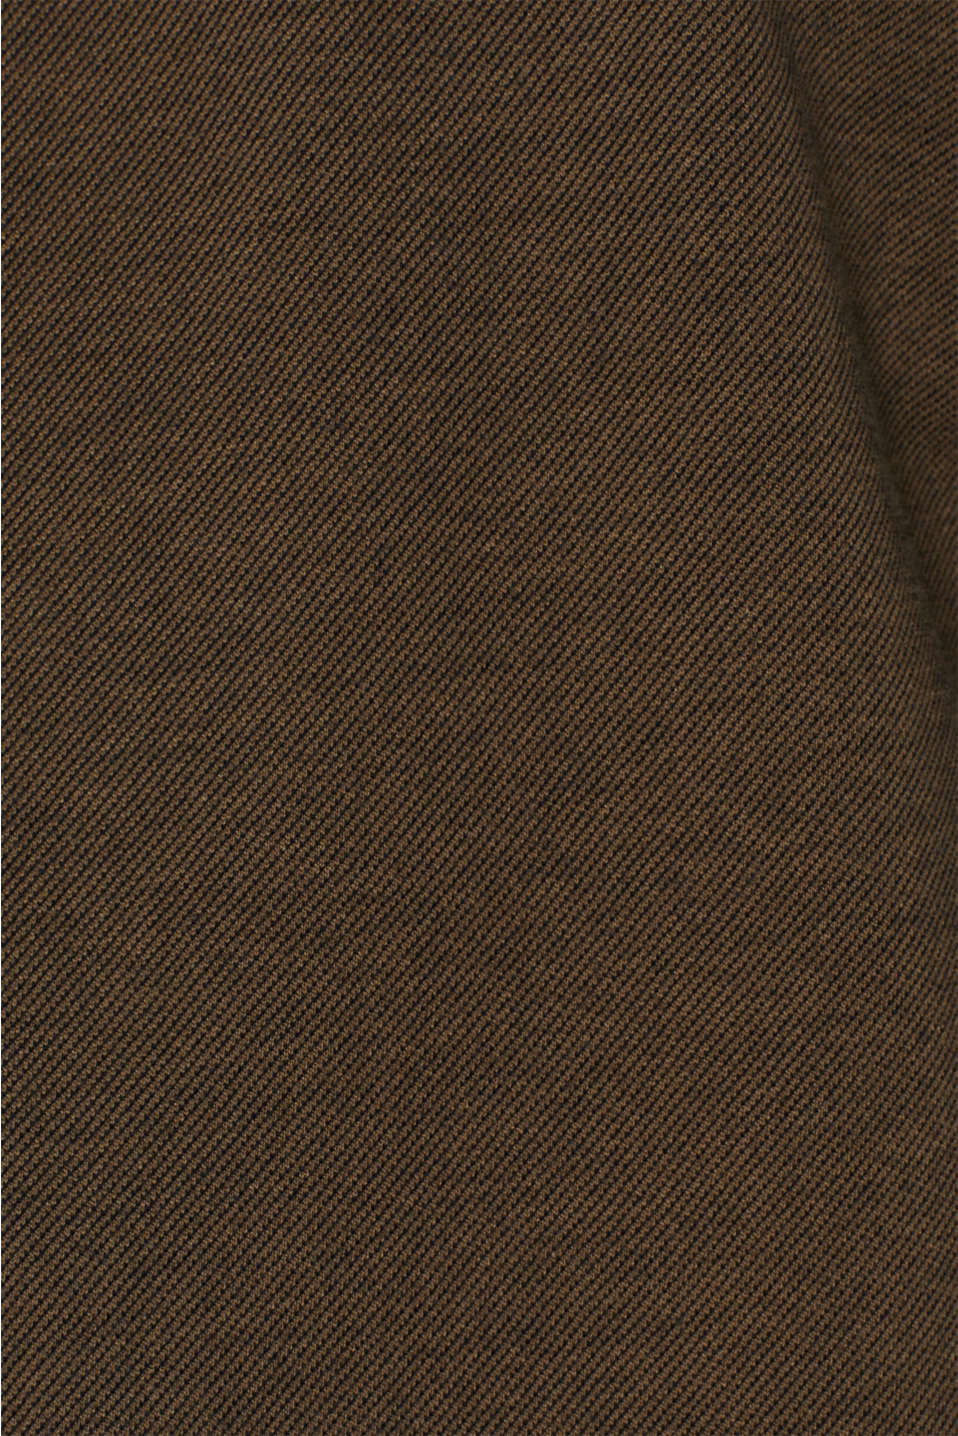 Long sleeve jersey top in 100% cotton, KHAKI GREEN, detail image number 4